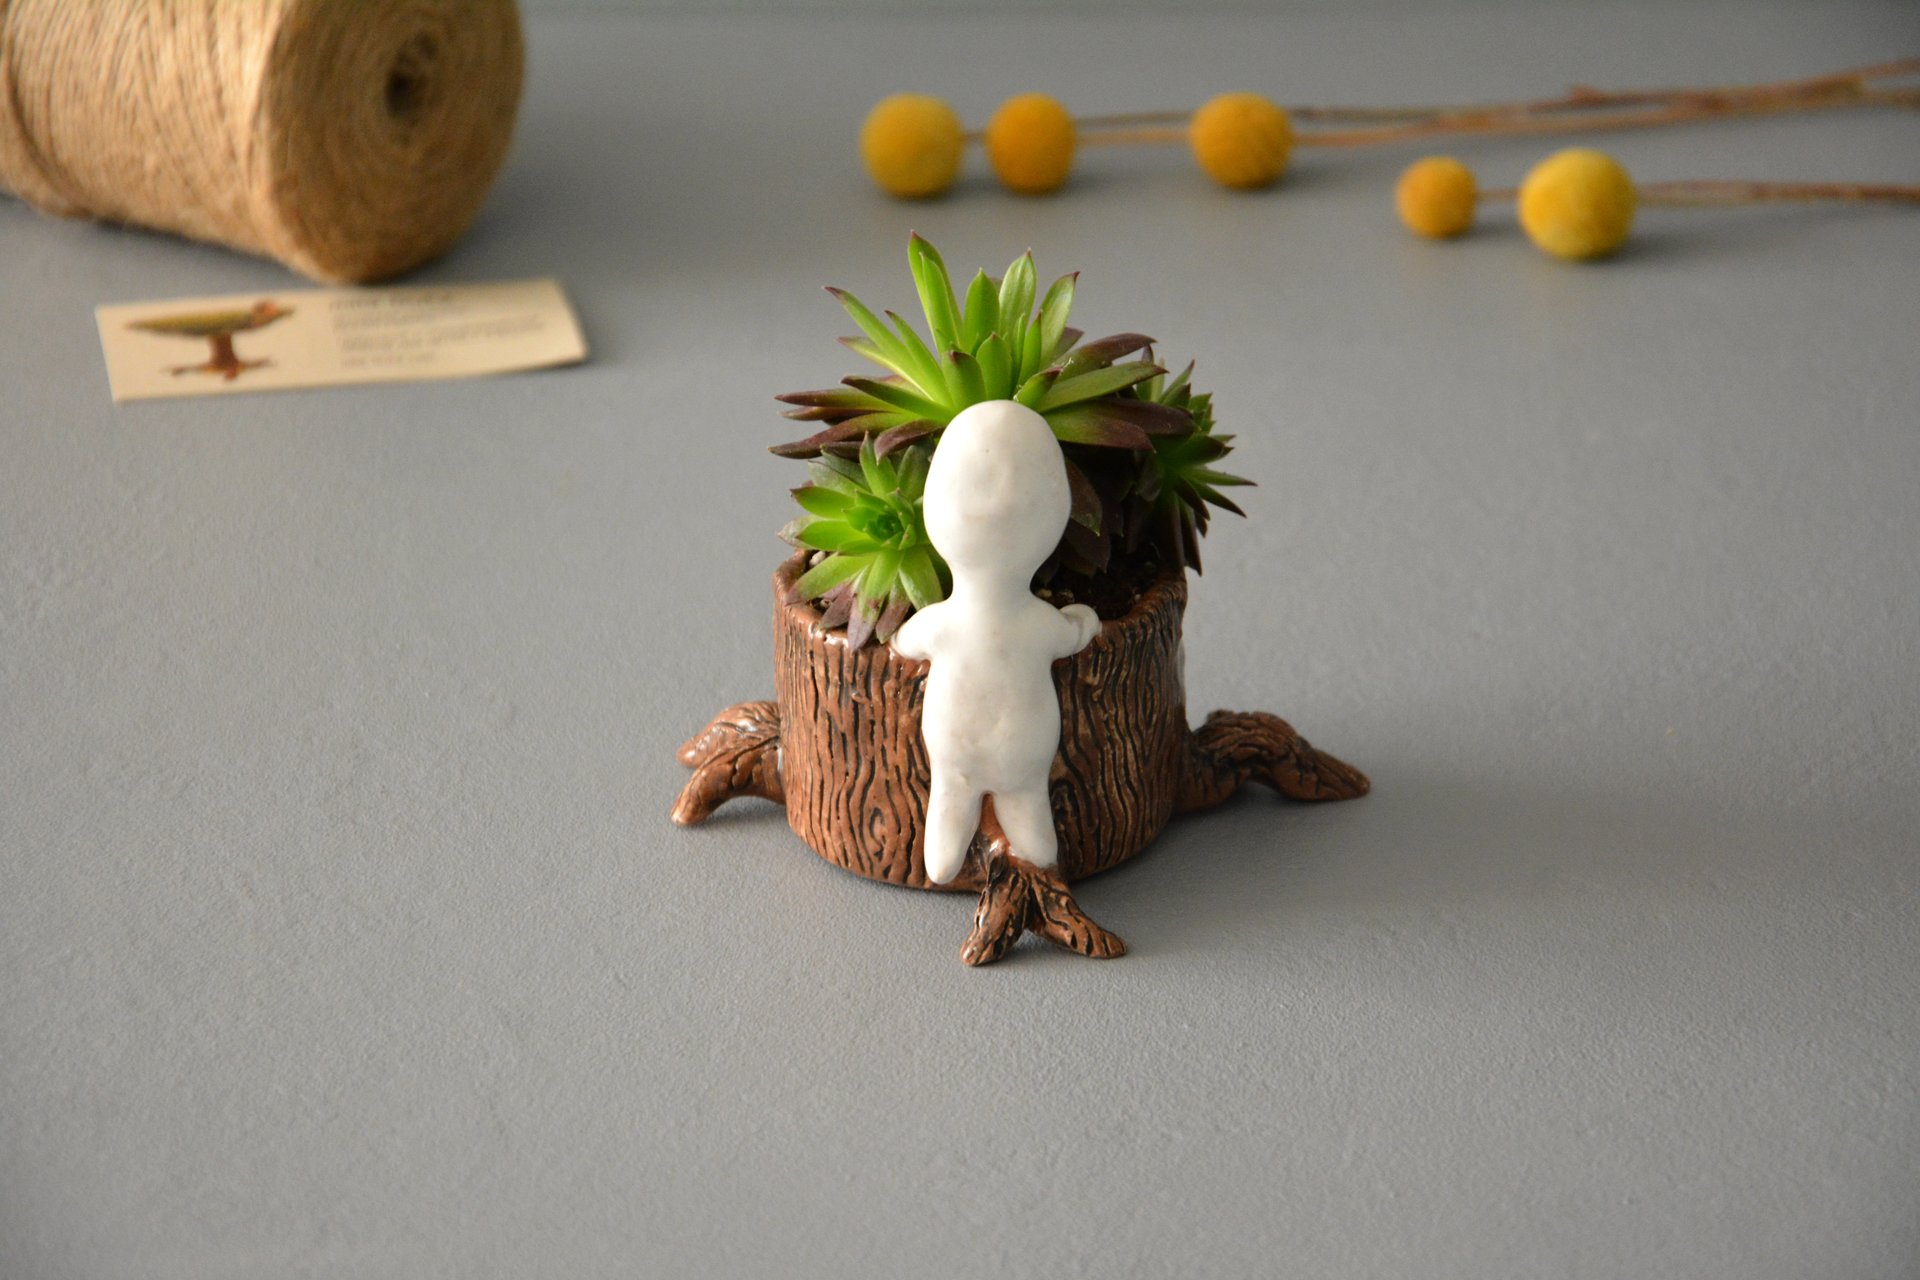 Kodama figurine tree spirit behind the stump, height - 9 cm, diameter of the stump - 6 cm, photo 4 of 8.